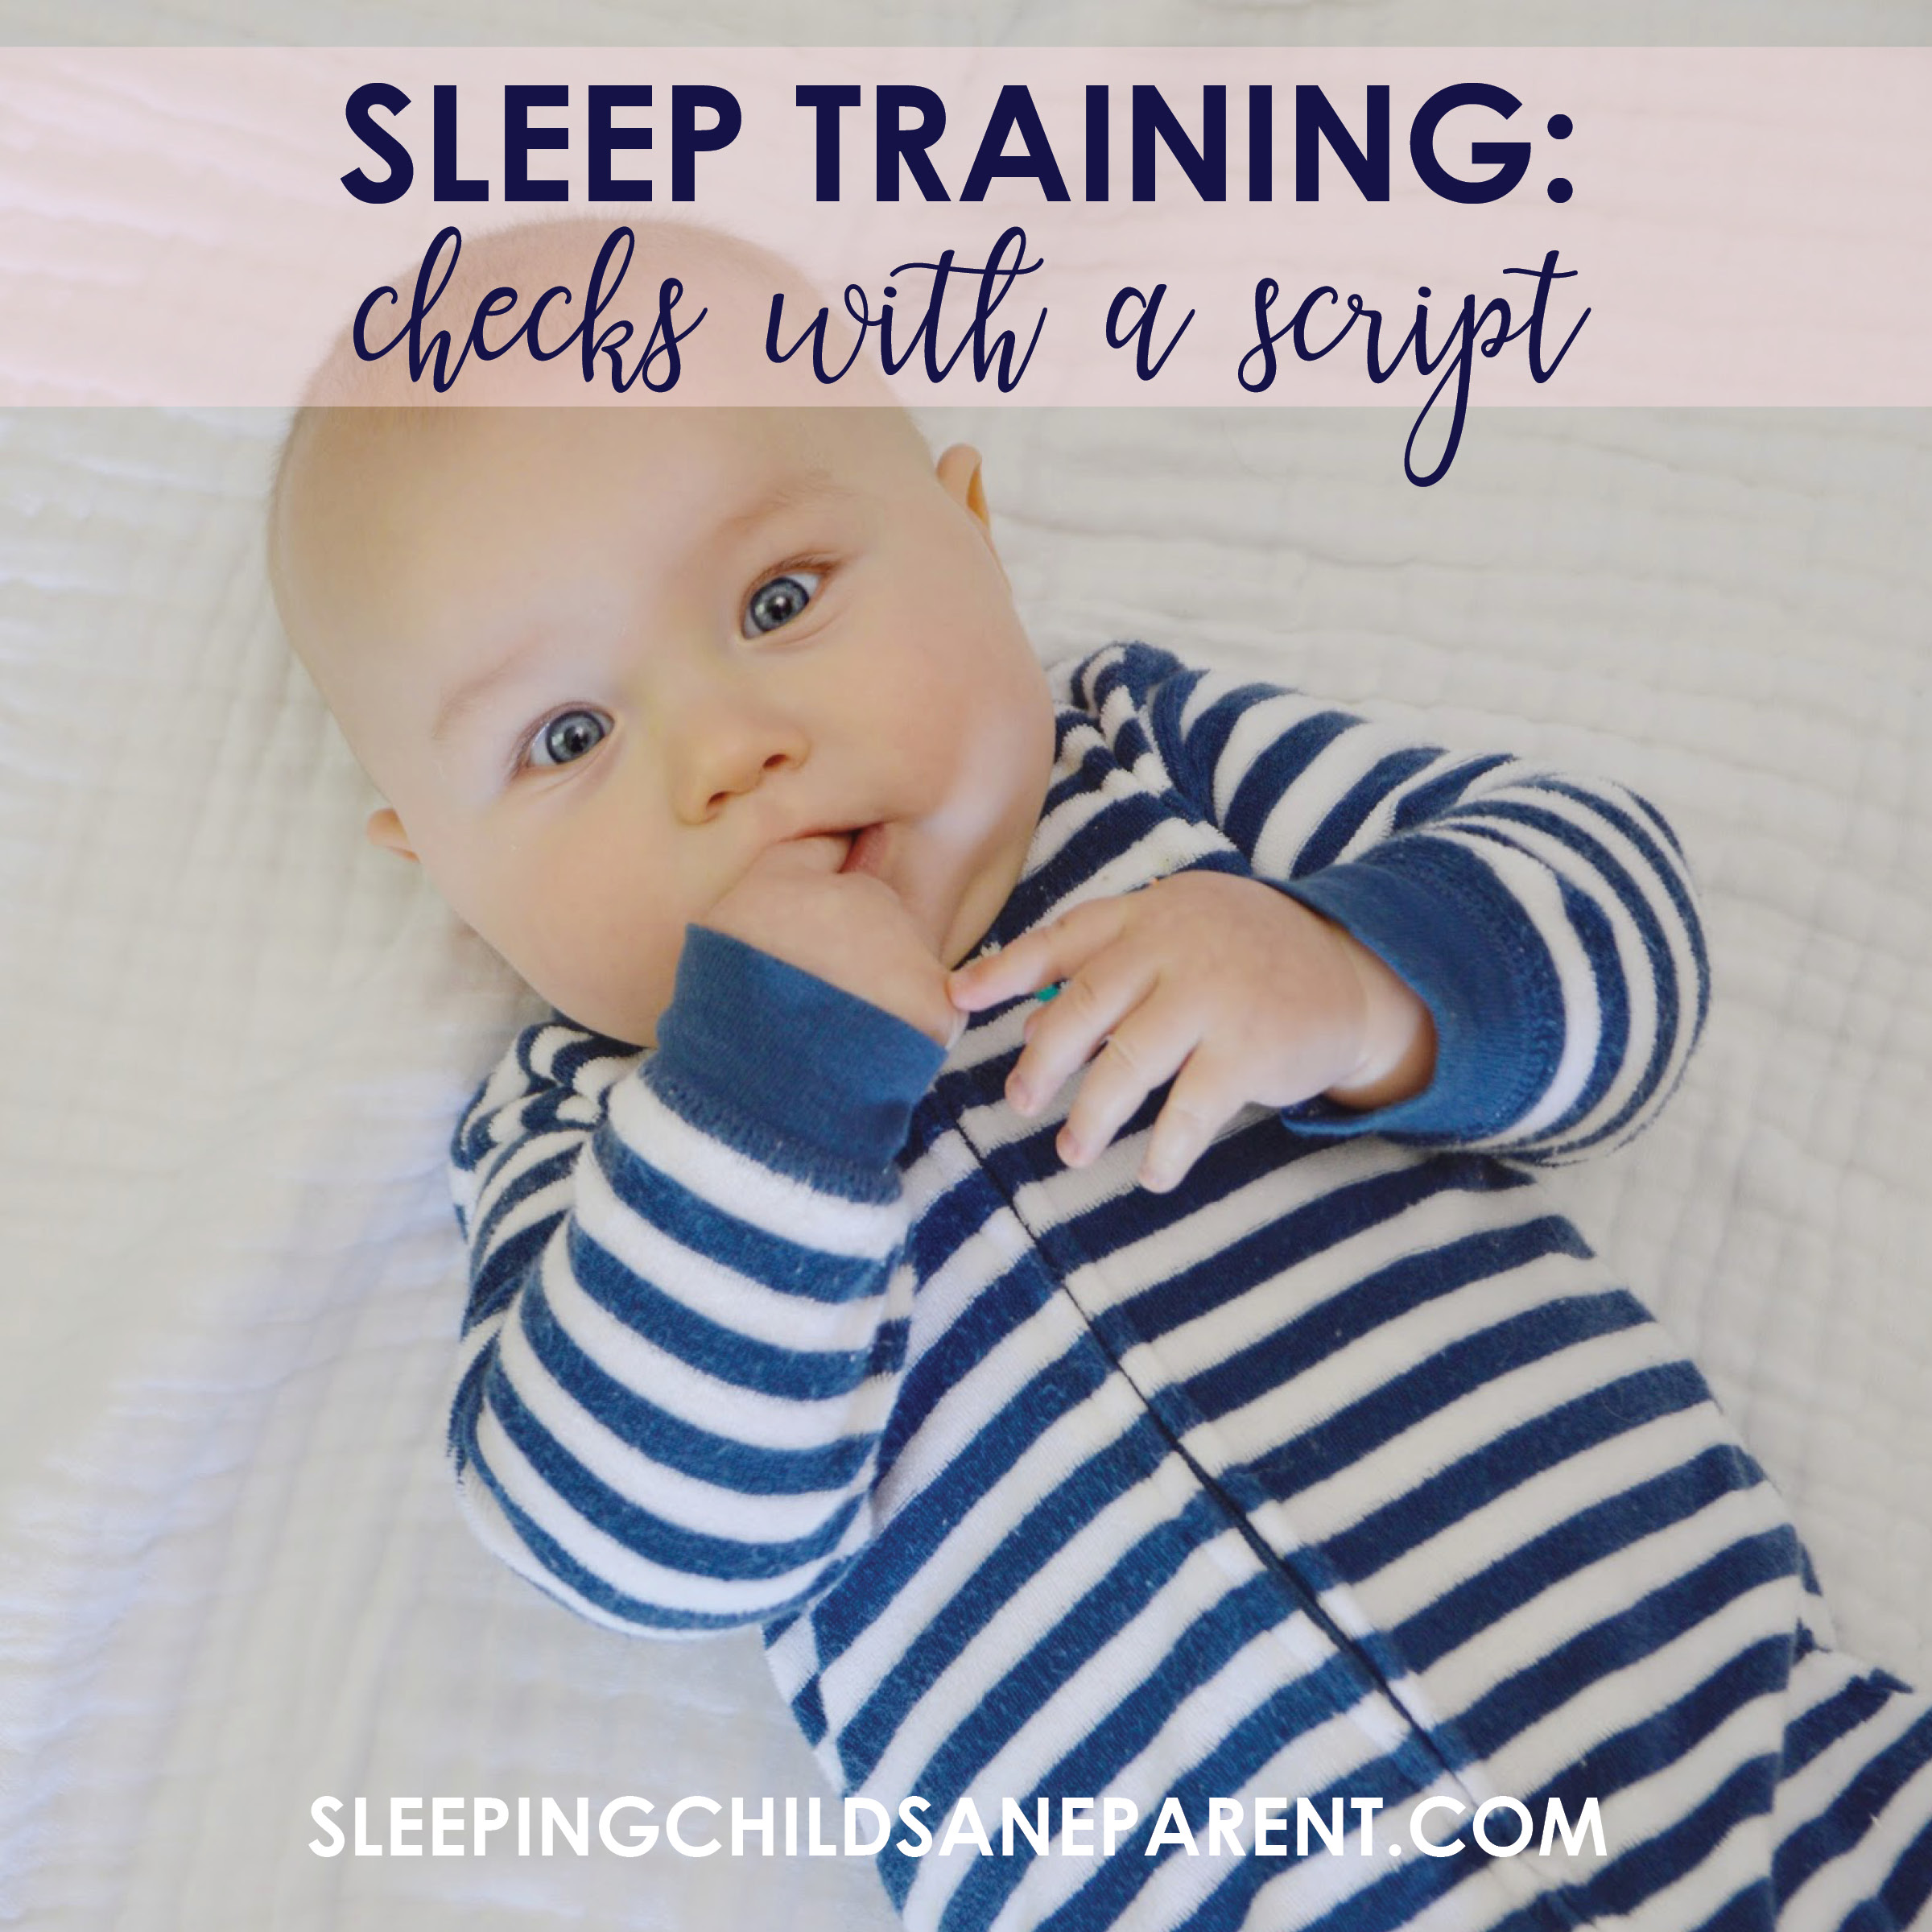 This sleep training method involves very brief checks at very frequent intervals so that Baby learns to trust that Mom and Dad are never far away, allowing Baby to access his own self-soothing capabilities.